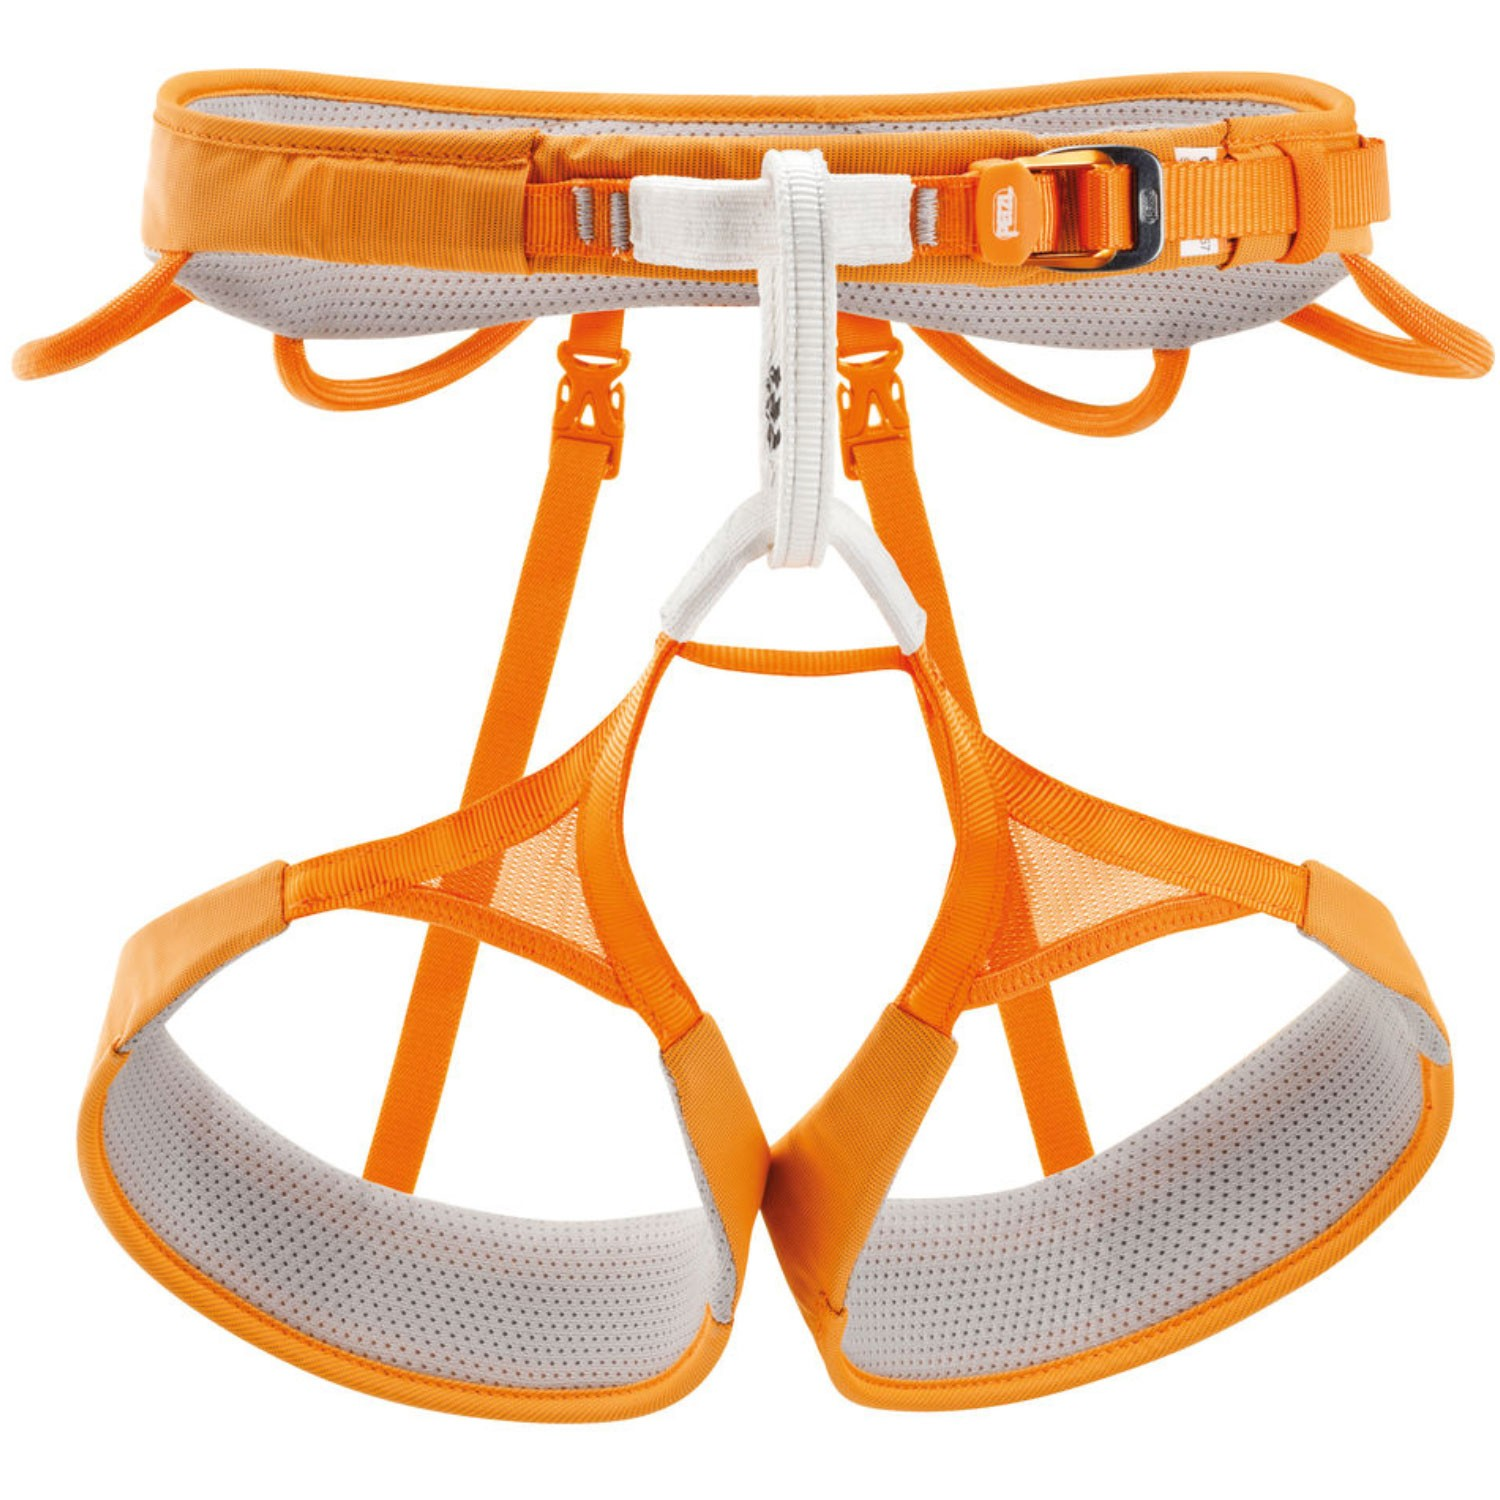 PETZL - Hirundos Climbing Harness - Orange